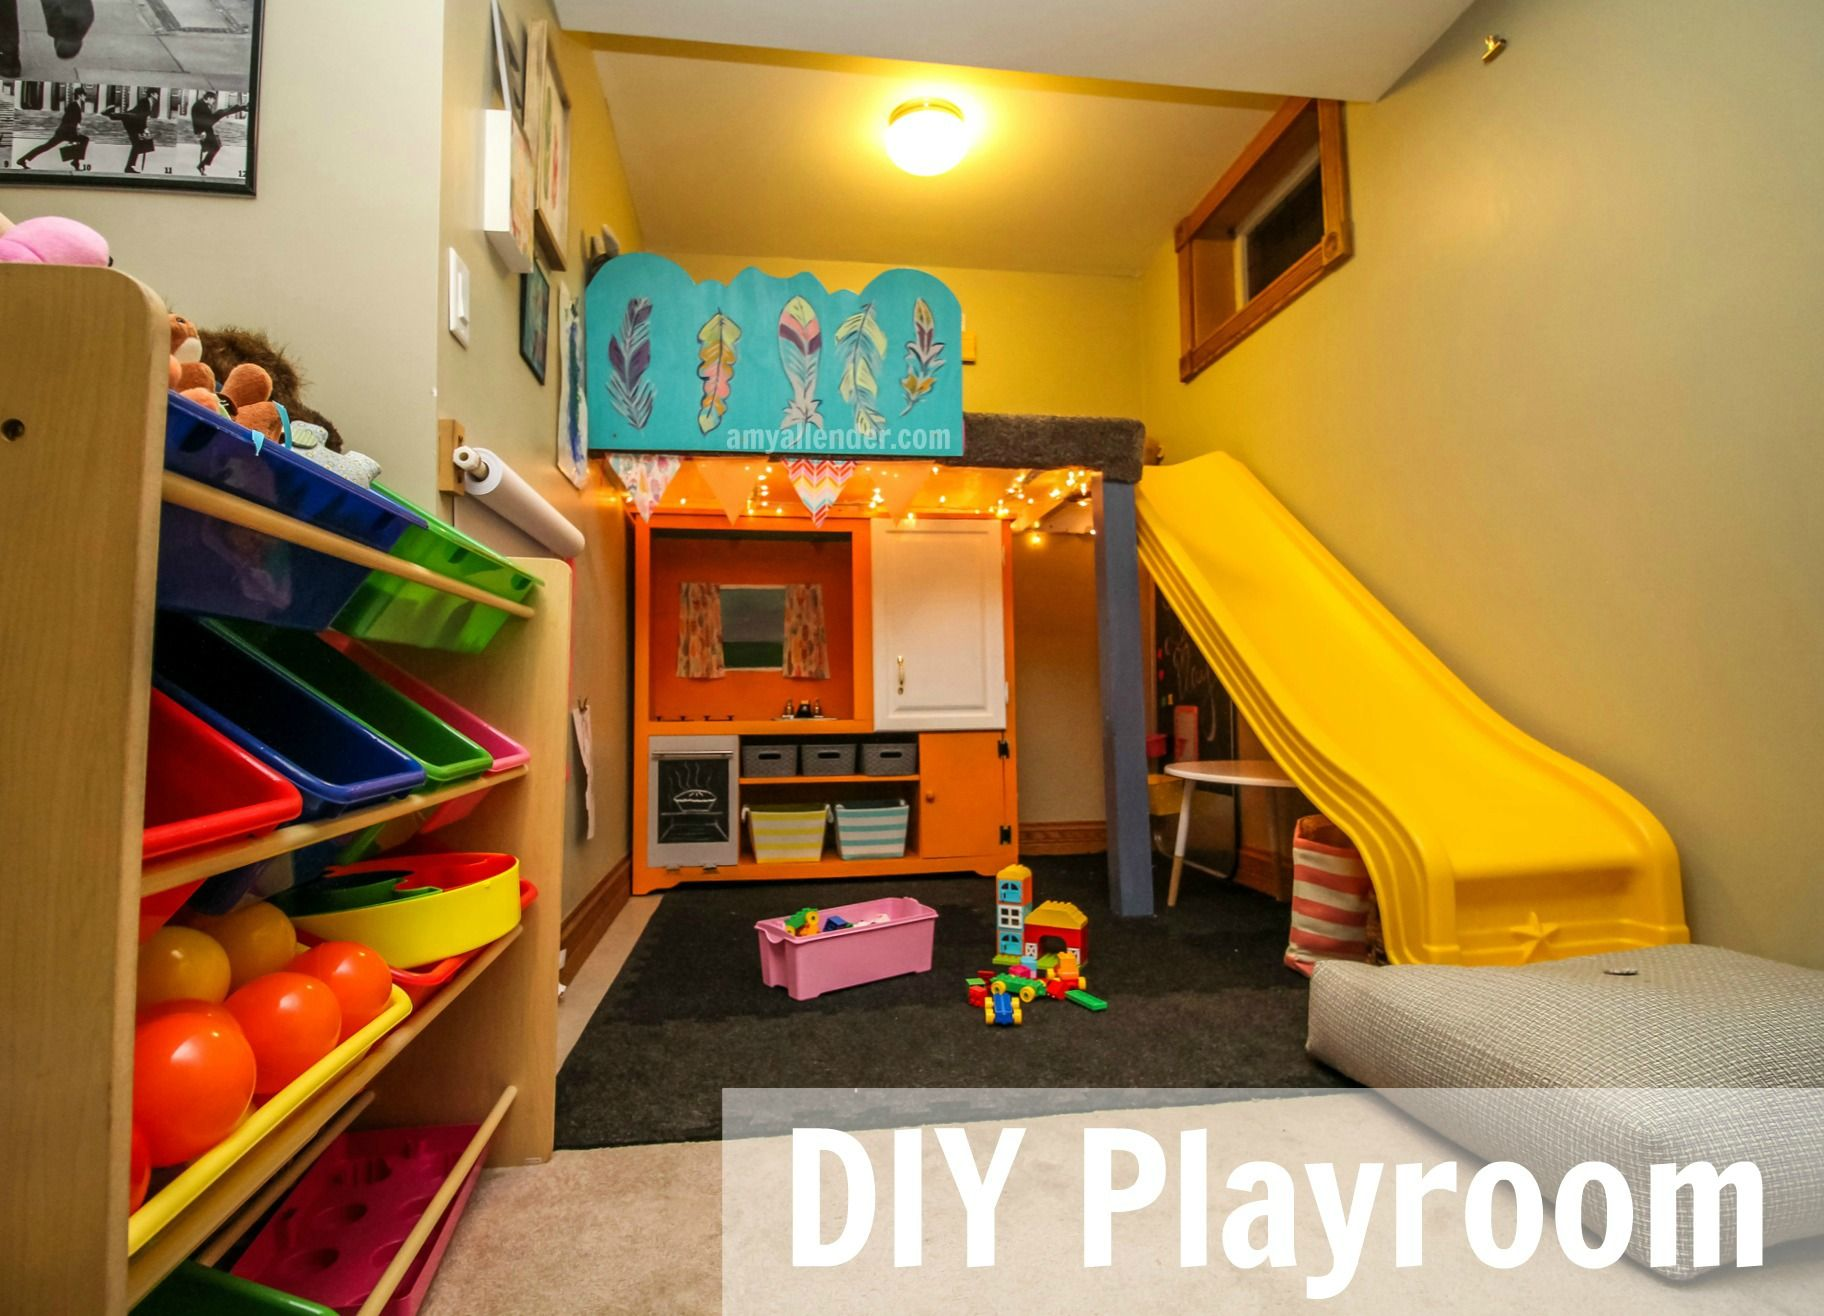 Child Playroom Ideas Turn A Small Space Into A Fun Organized Playroom With